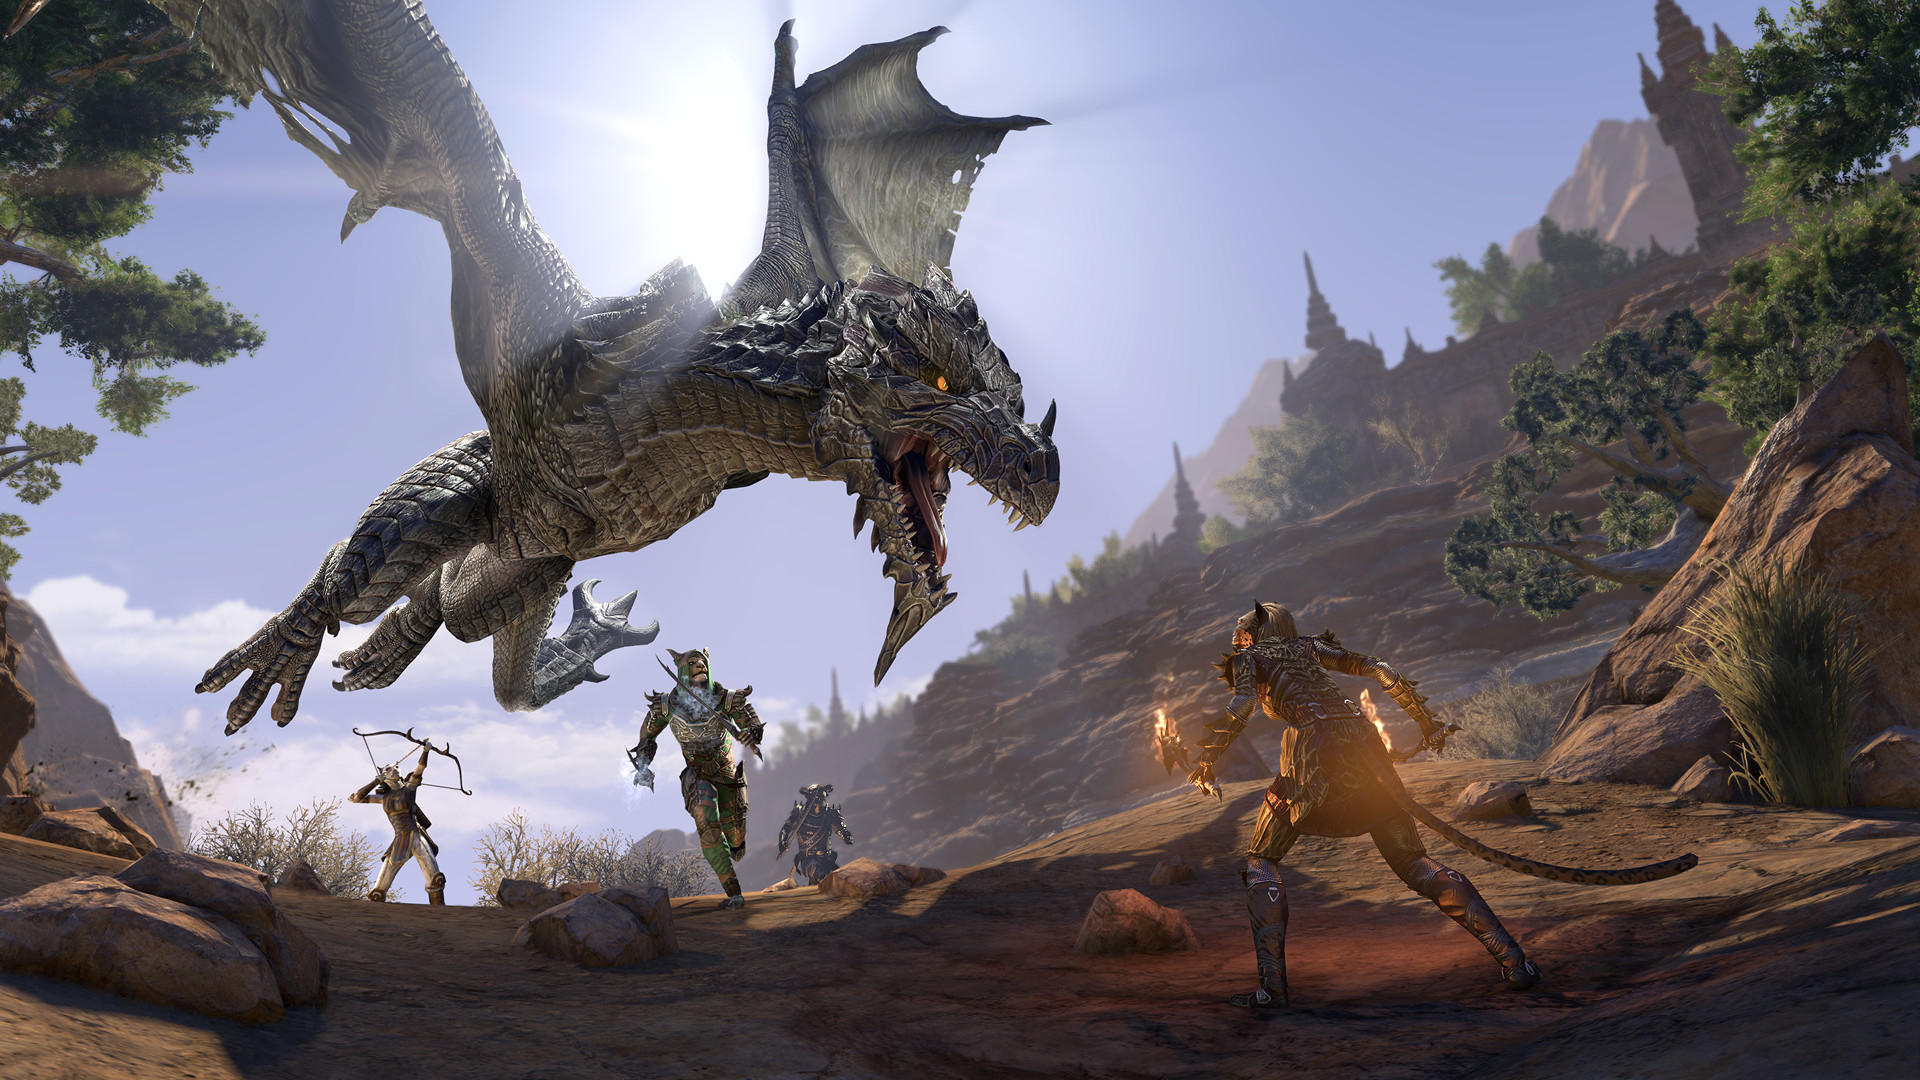 The Elder Scrolls Online Elsweyr Dragon Wallpaper Hd Games 4k